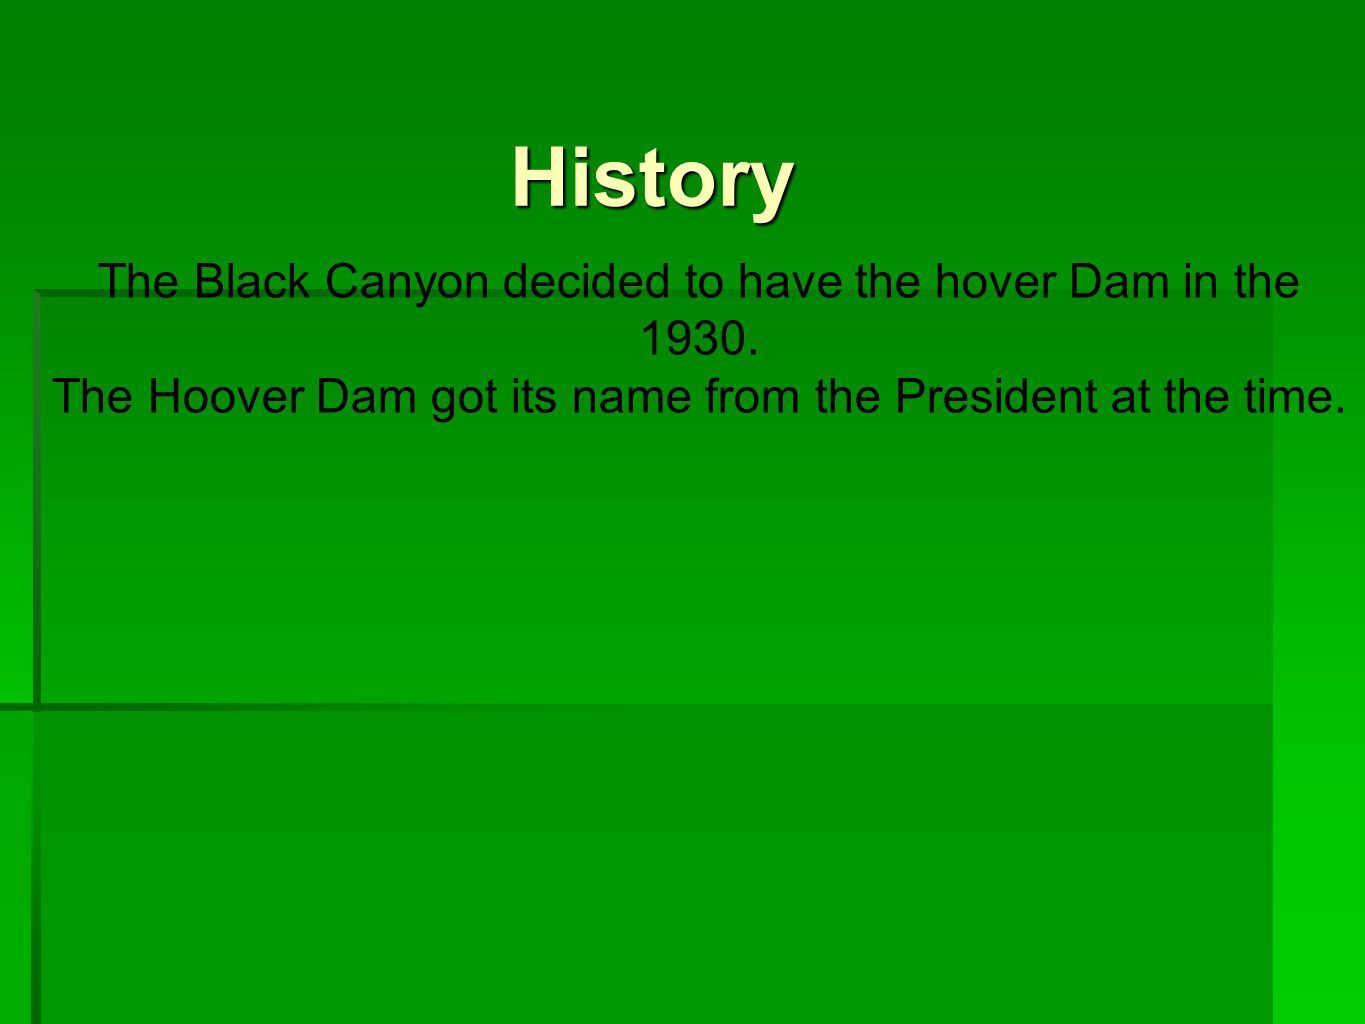 History The Black Canyon decided to have the hover Dam in the 1930.